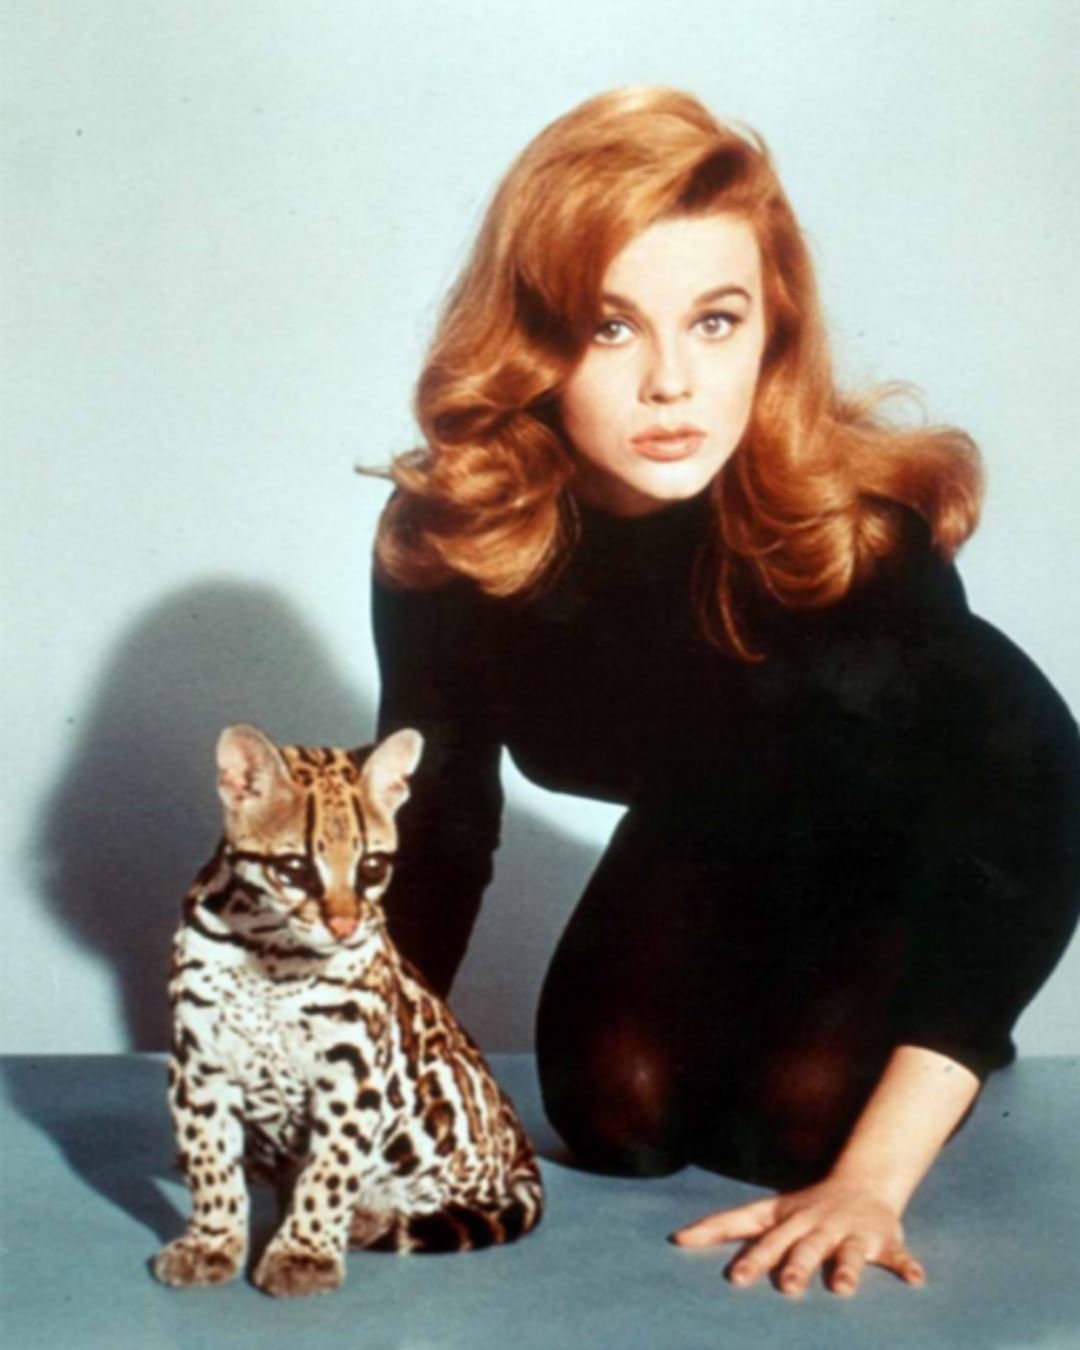 35 8 M Gostos 168 Comentarios History In Pictures Historyphotographed No Instagram Ann Margaret And An Ocelot Ci In 2020 Ann Margret Classic Beauty Cat People